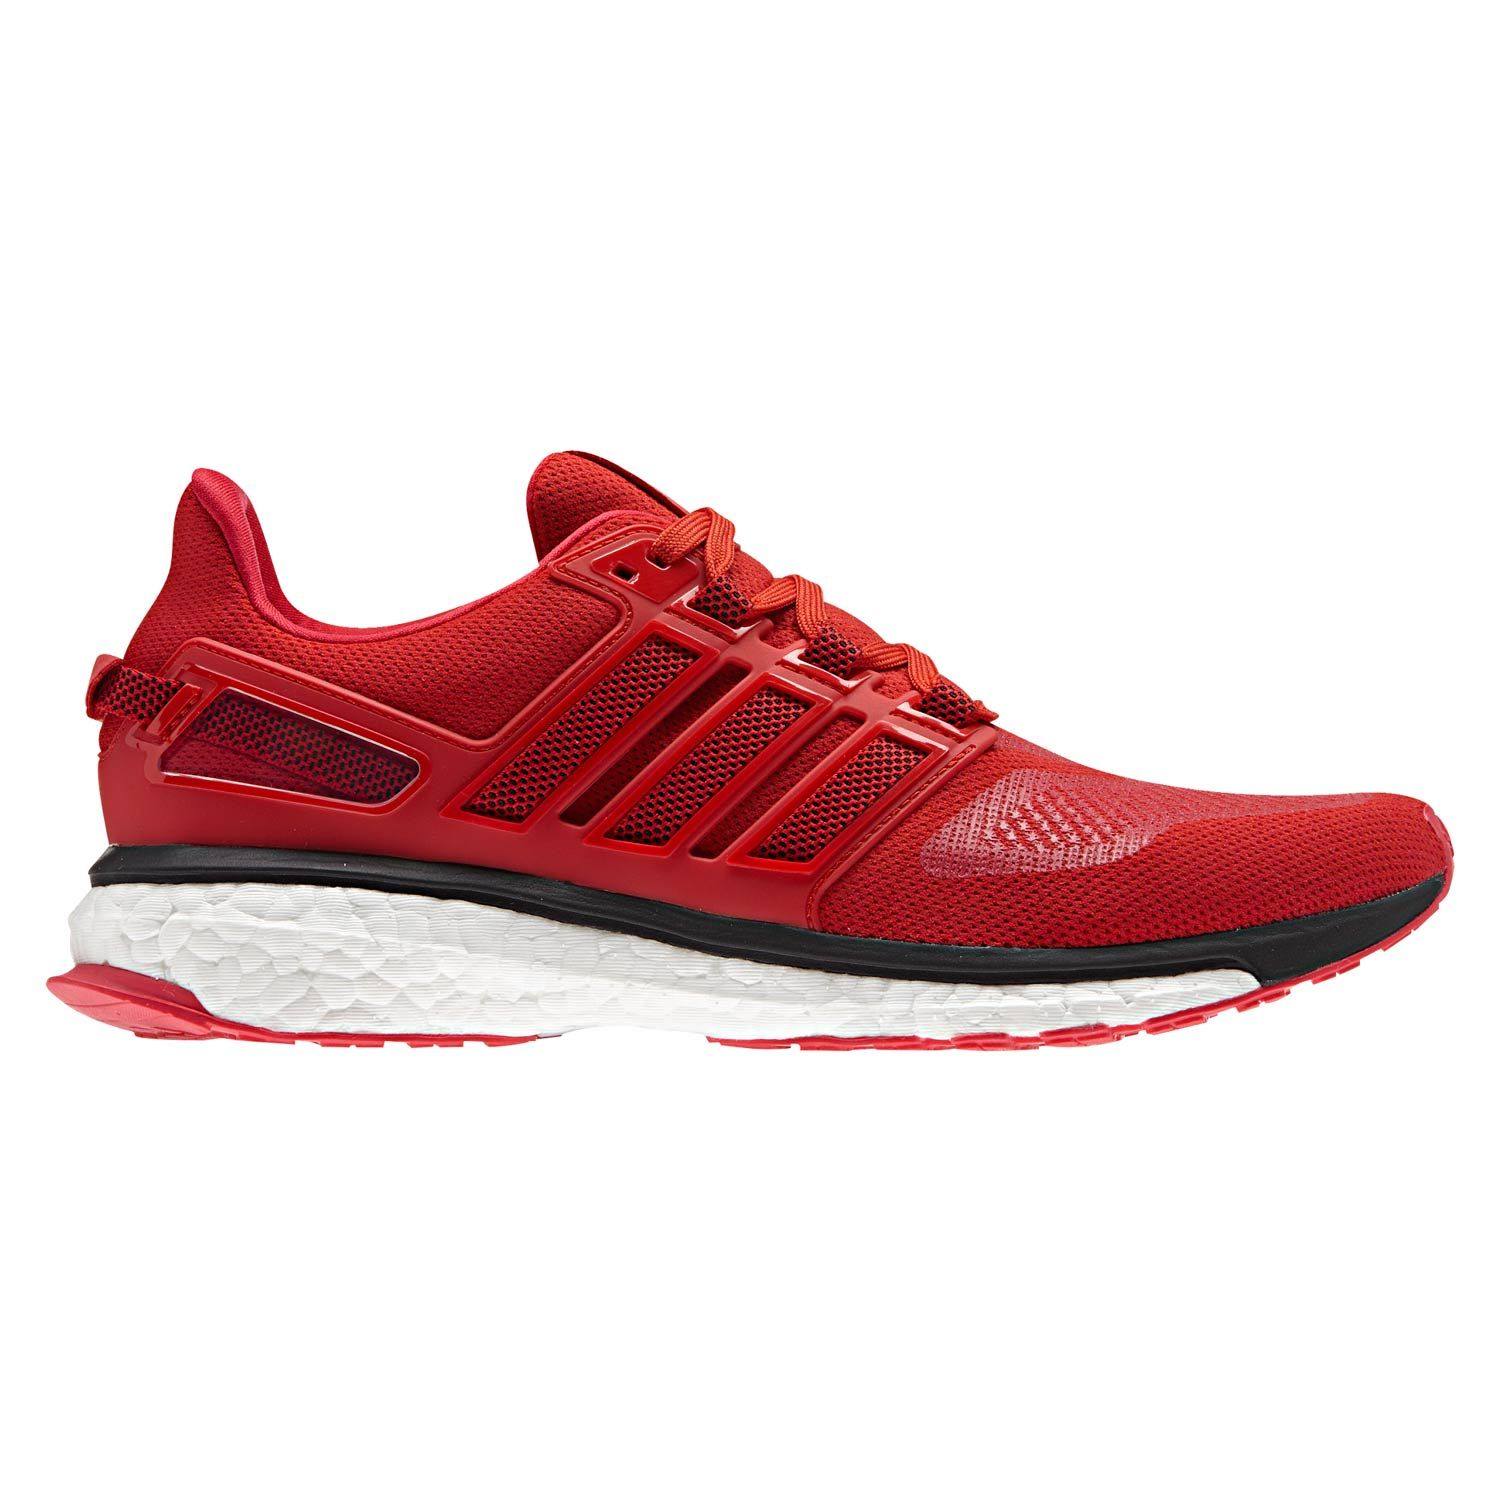 5a6225107604 adidas energy boost rouge